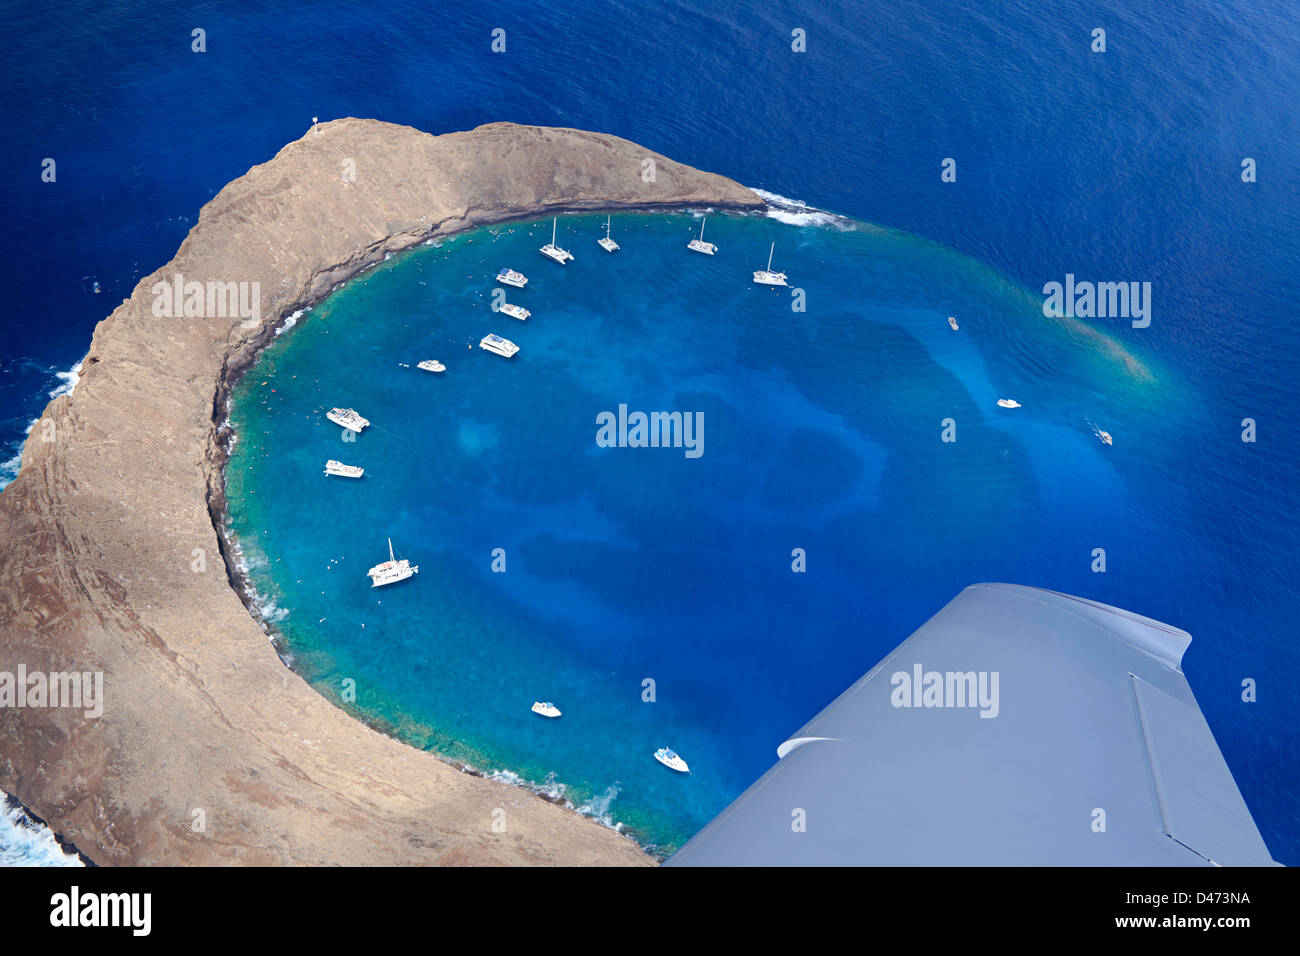 An aerial look out the window from a small plane at Molokini Crater, at mid-morning with charter boats, Maui, Hawaii. - Stock Image